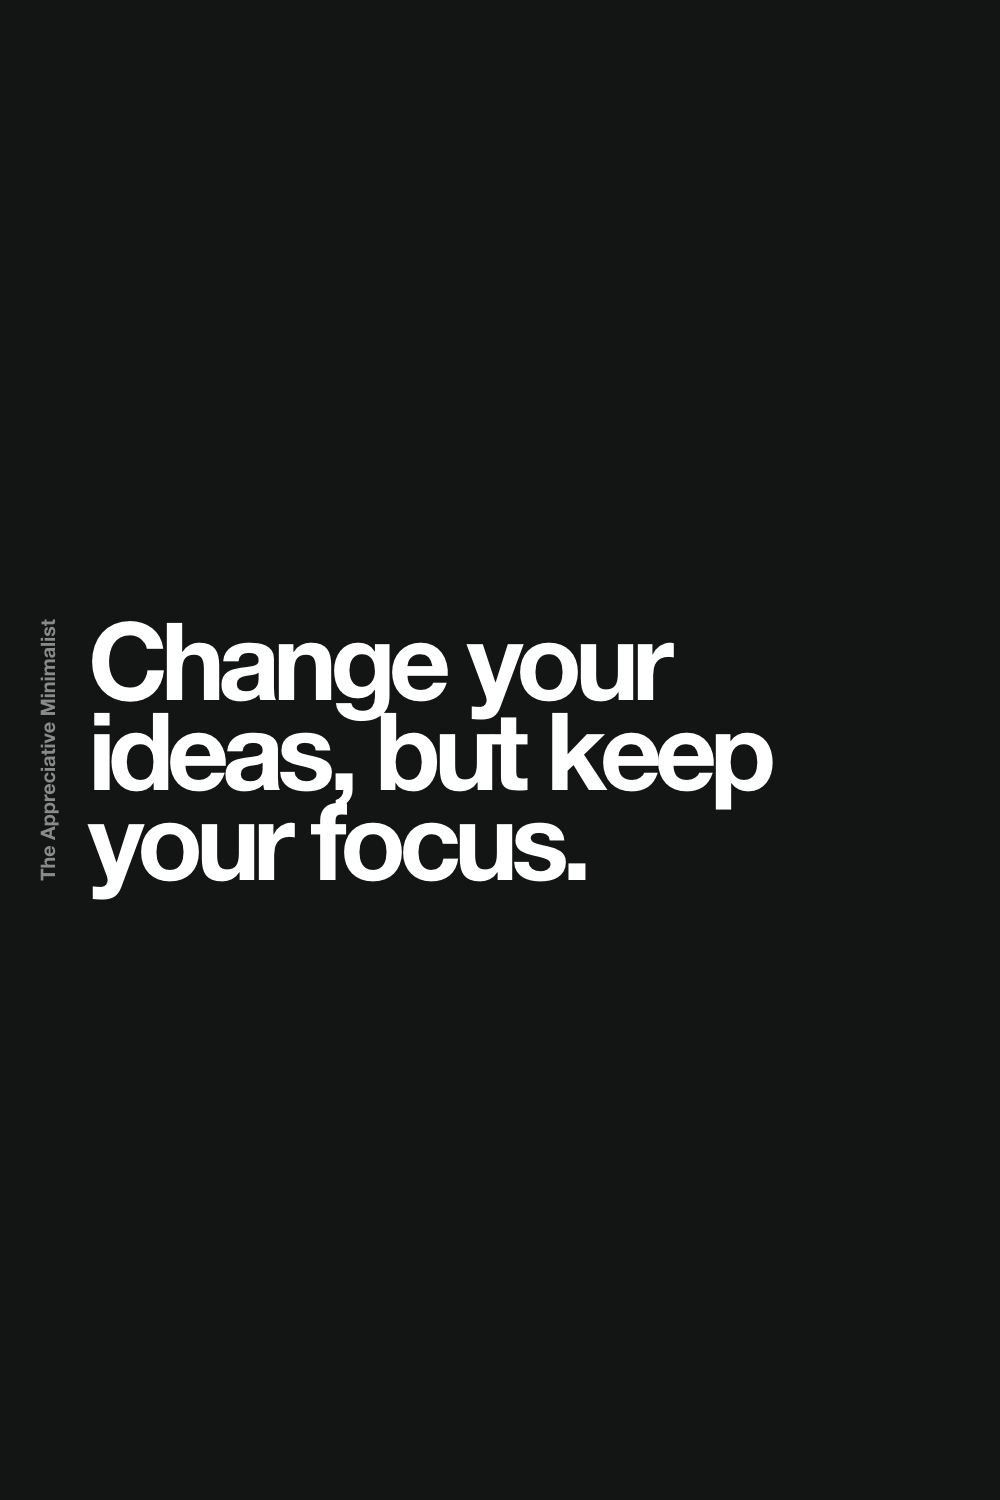 Change your ideas, but keep your focus.